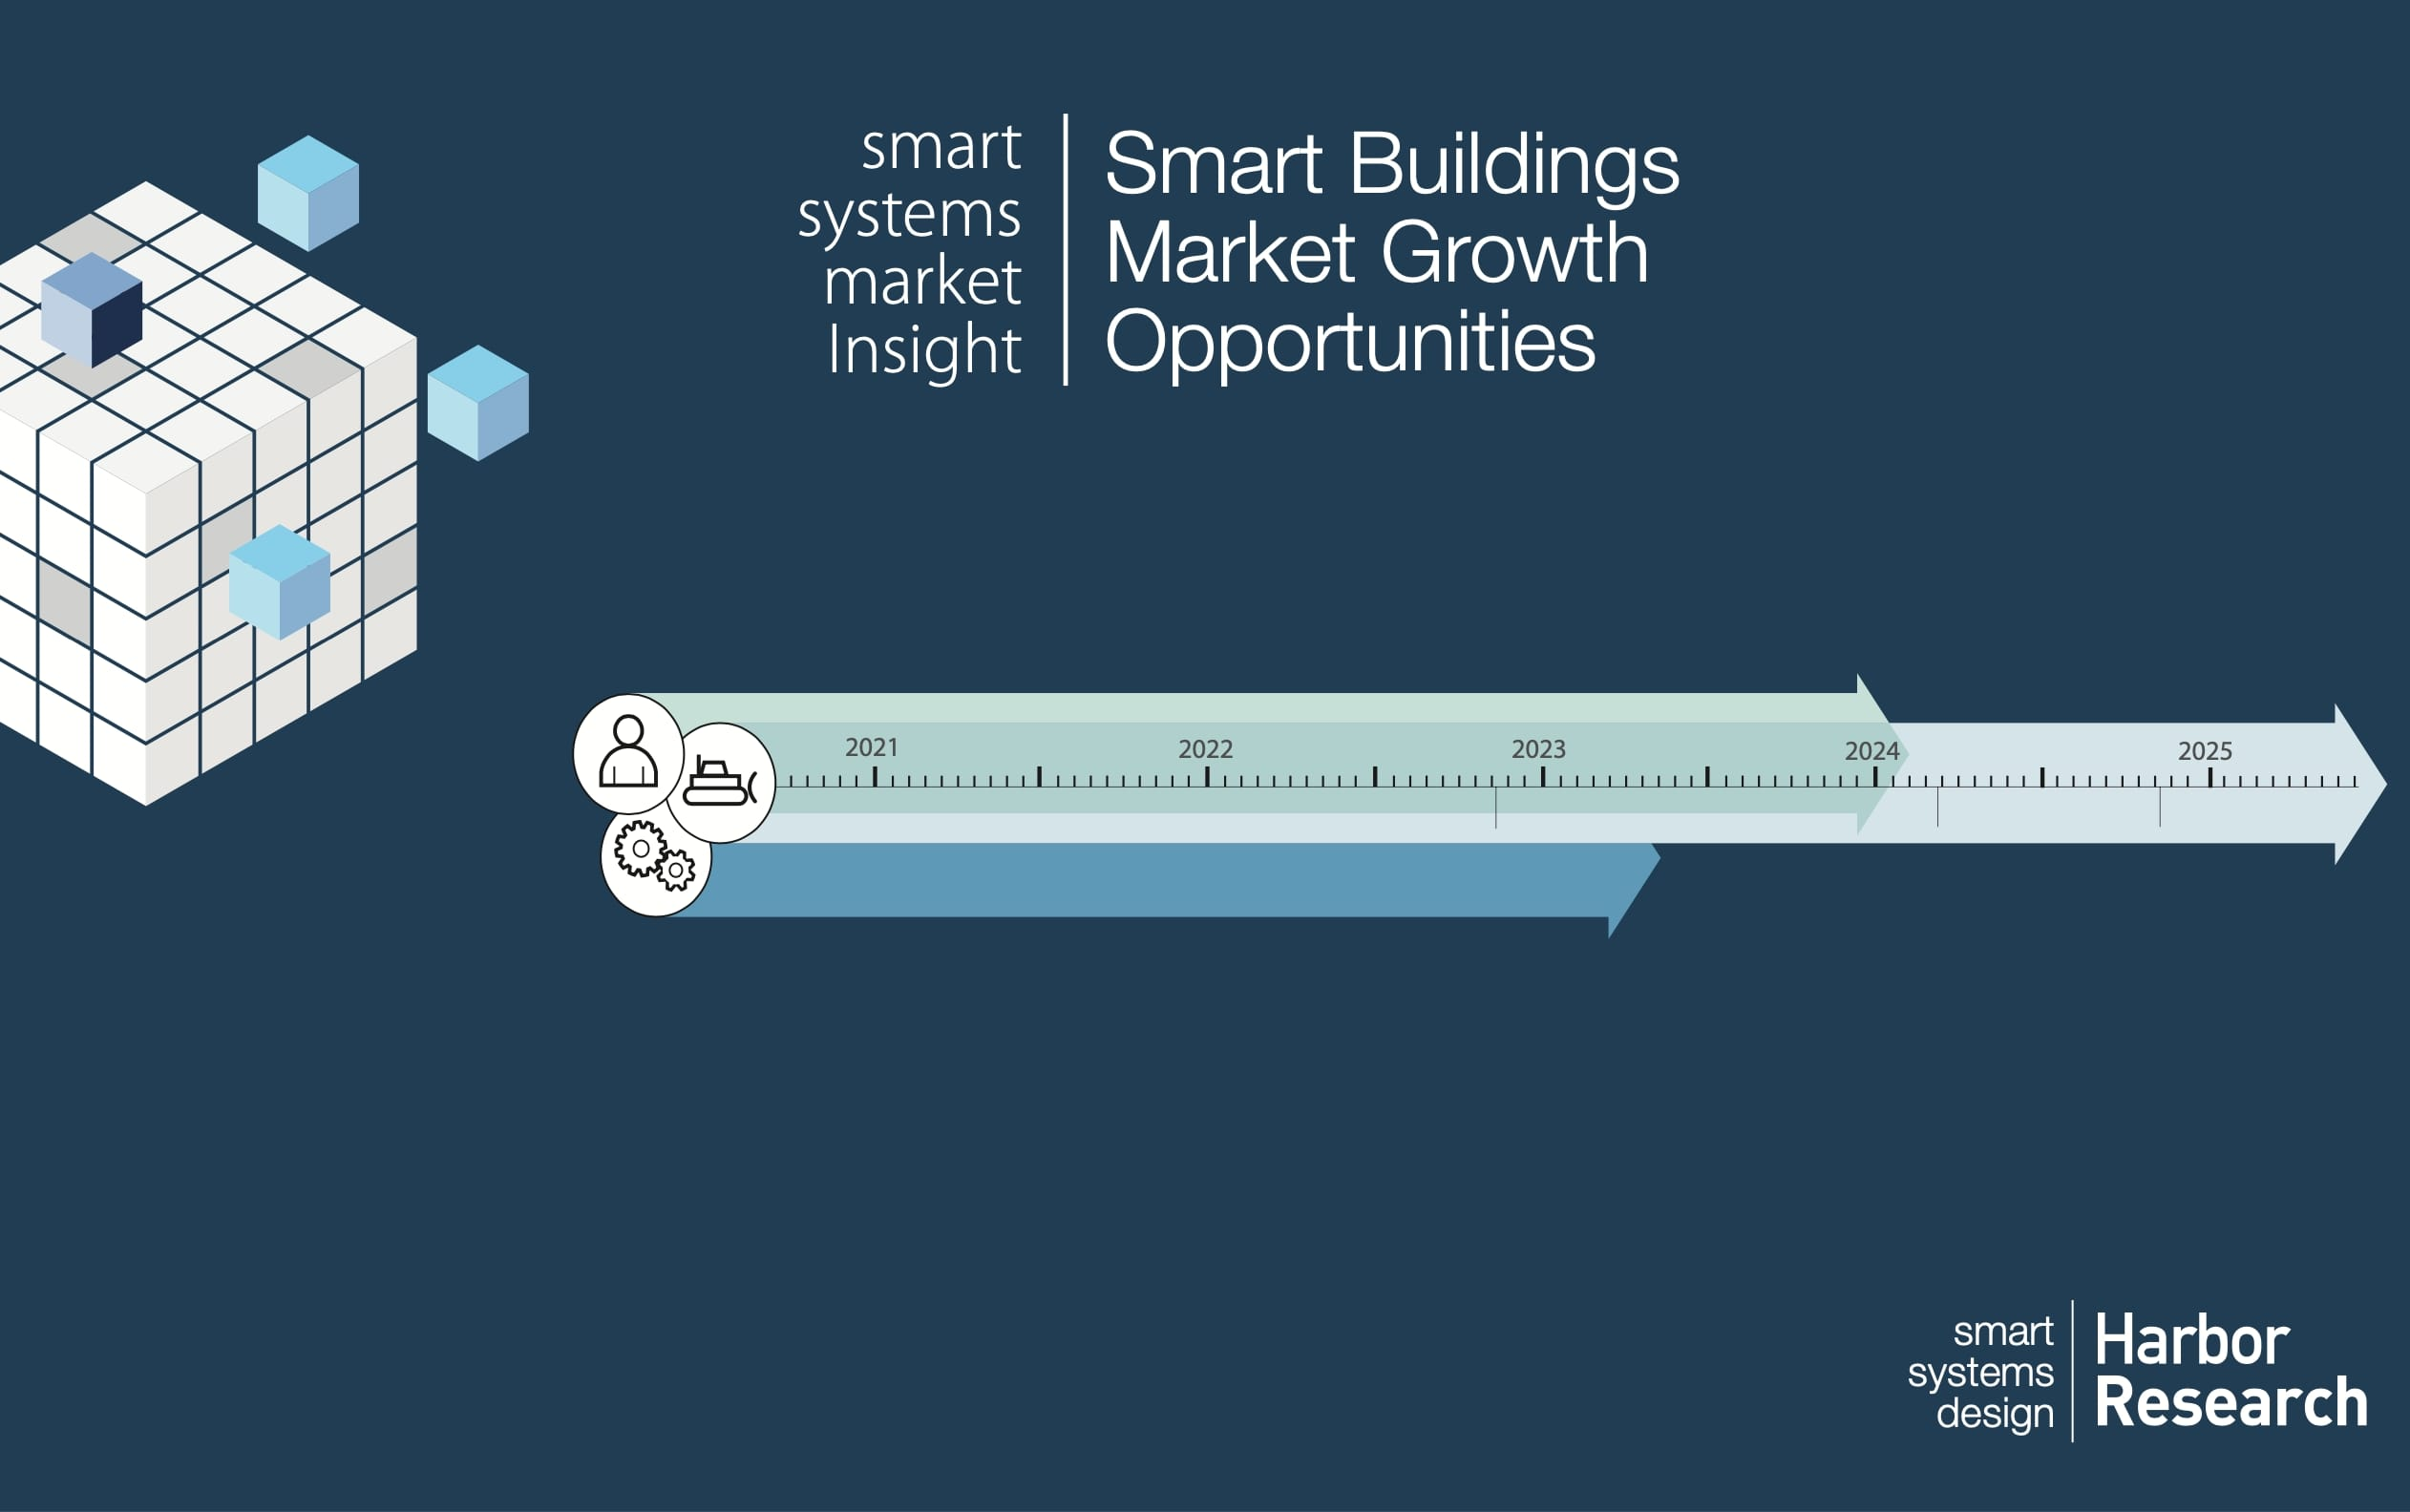 Smart Buildings Market Growth Opportunities cover